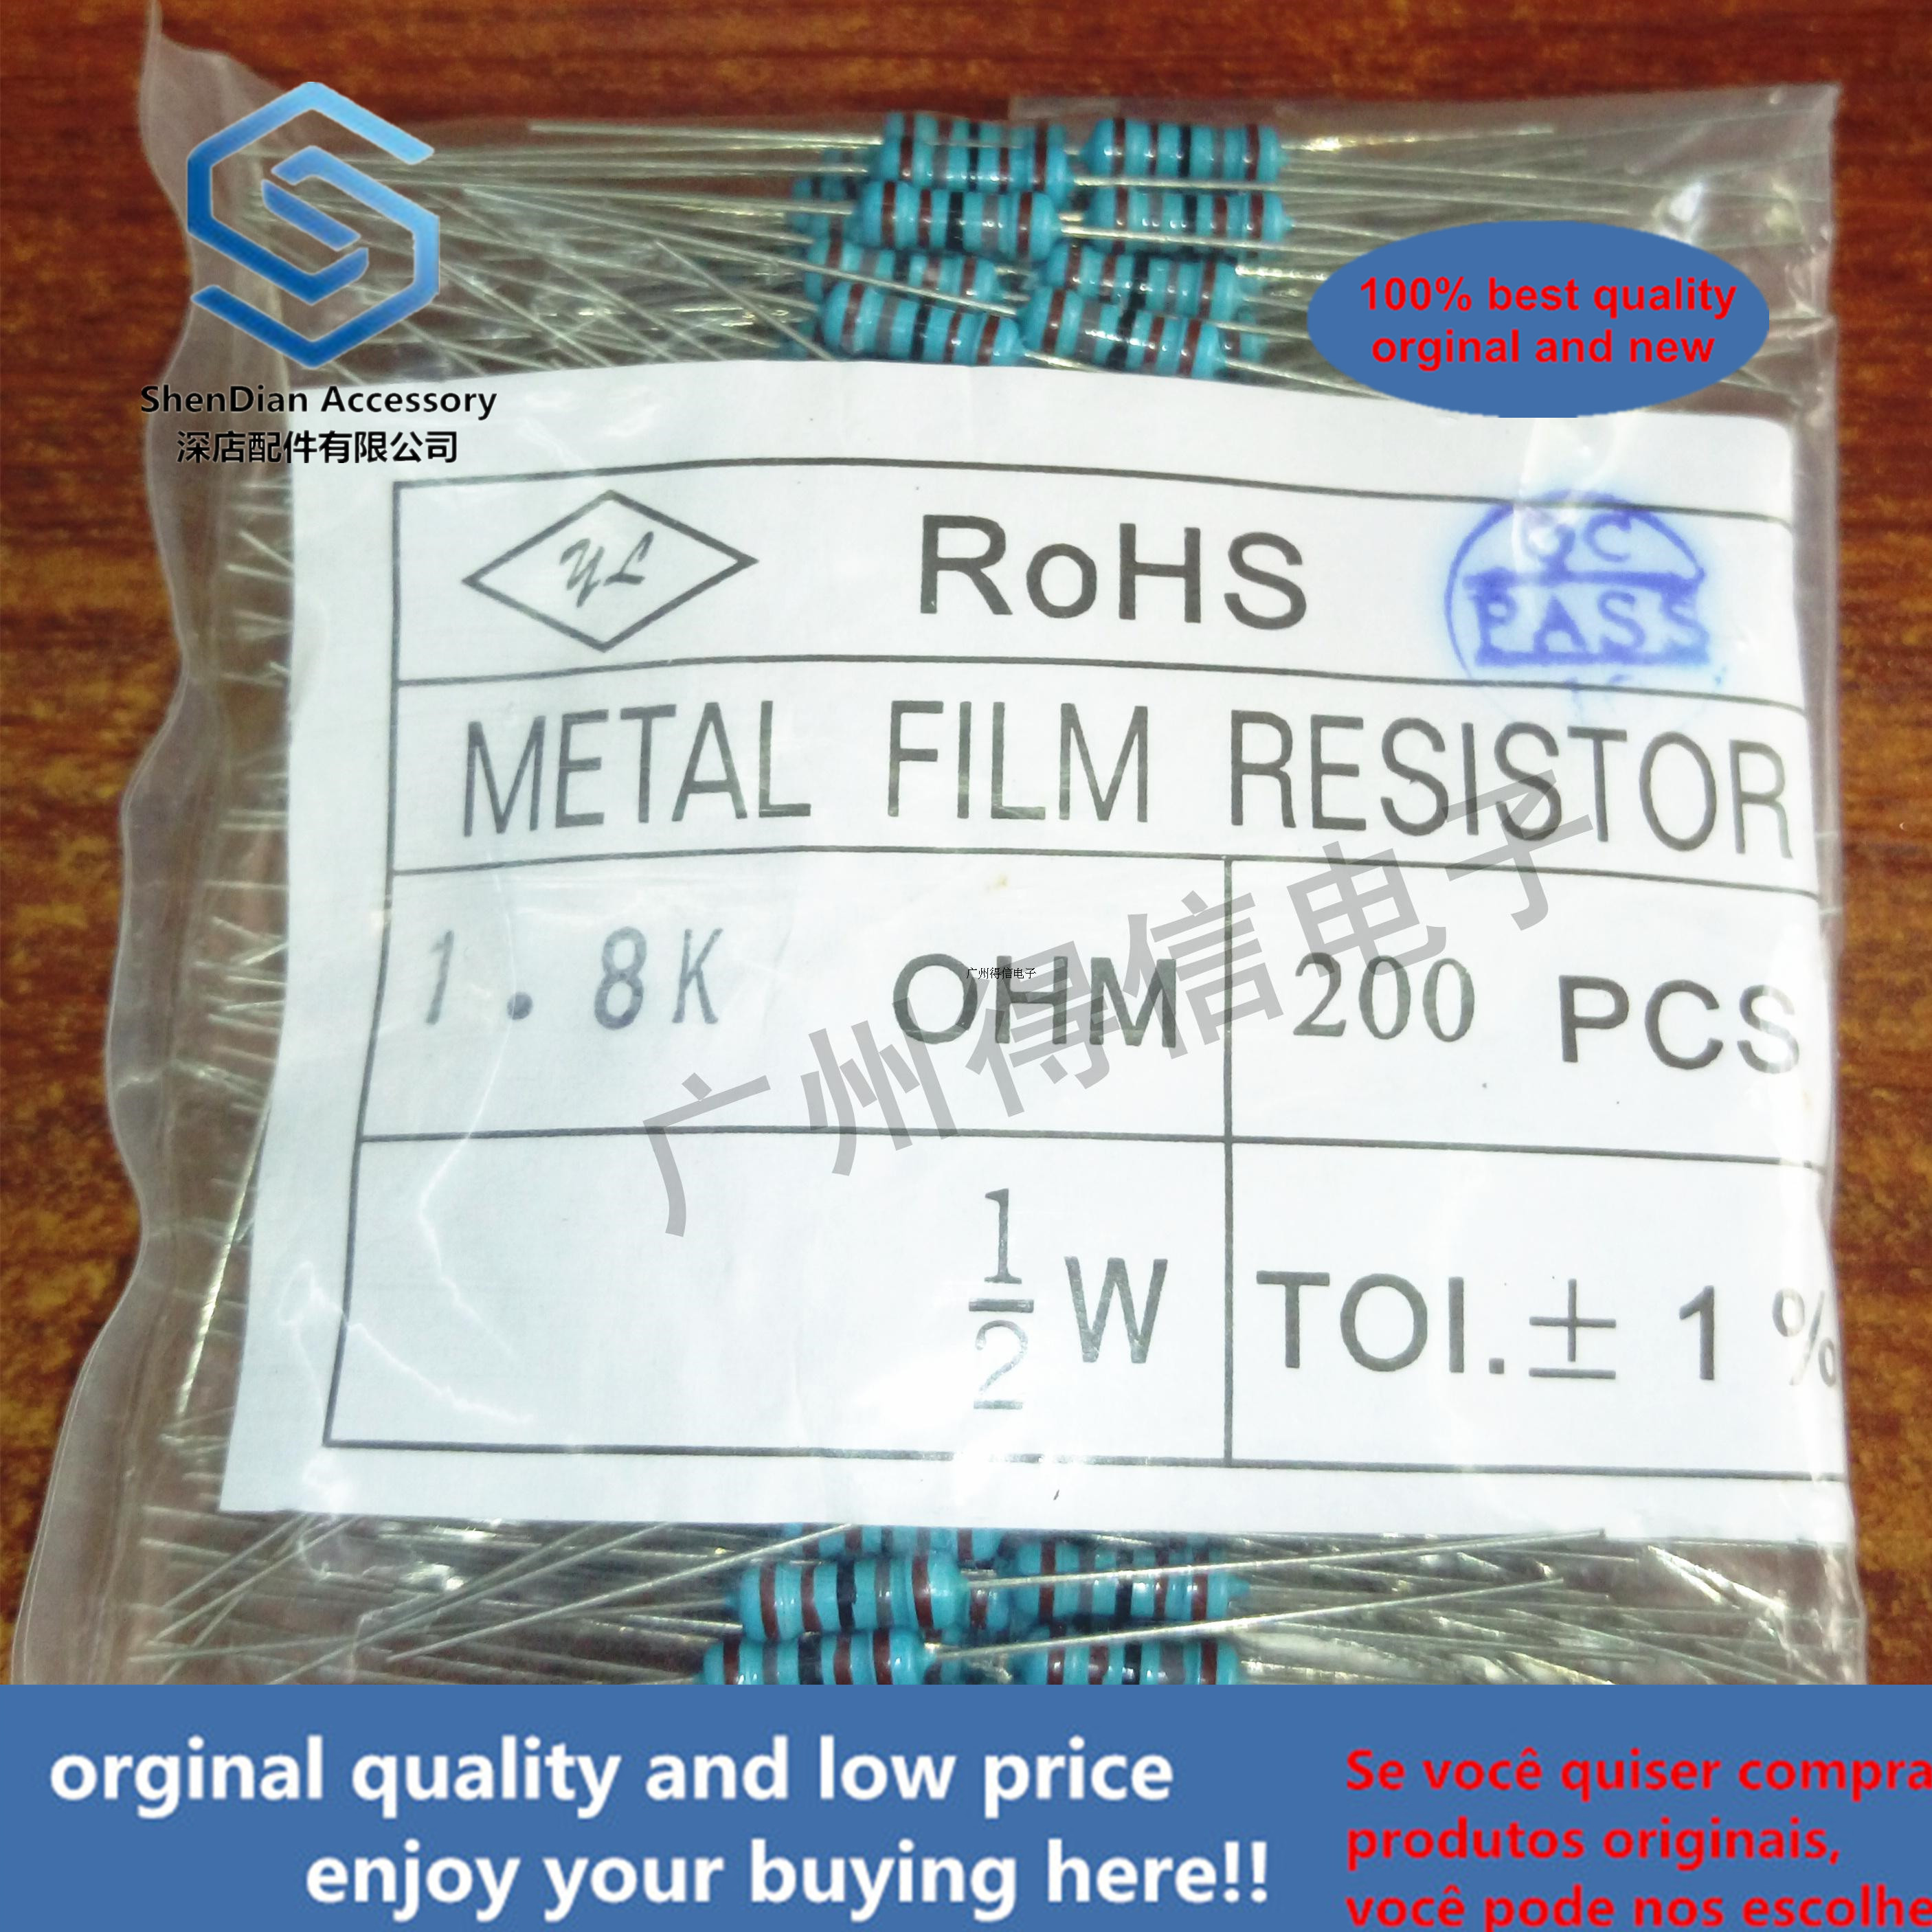 200pcs 1 / 2W 7.5K 7500 Euro 1% Brand New Metal Film Iron Feet Resistor Bag 200 Pcs Per Pack